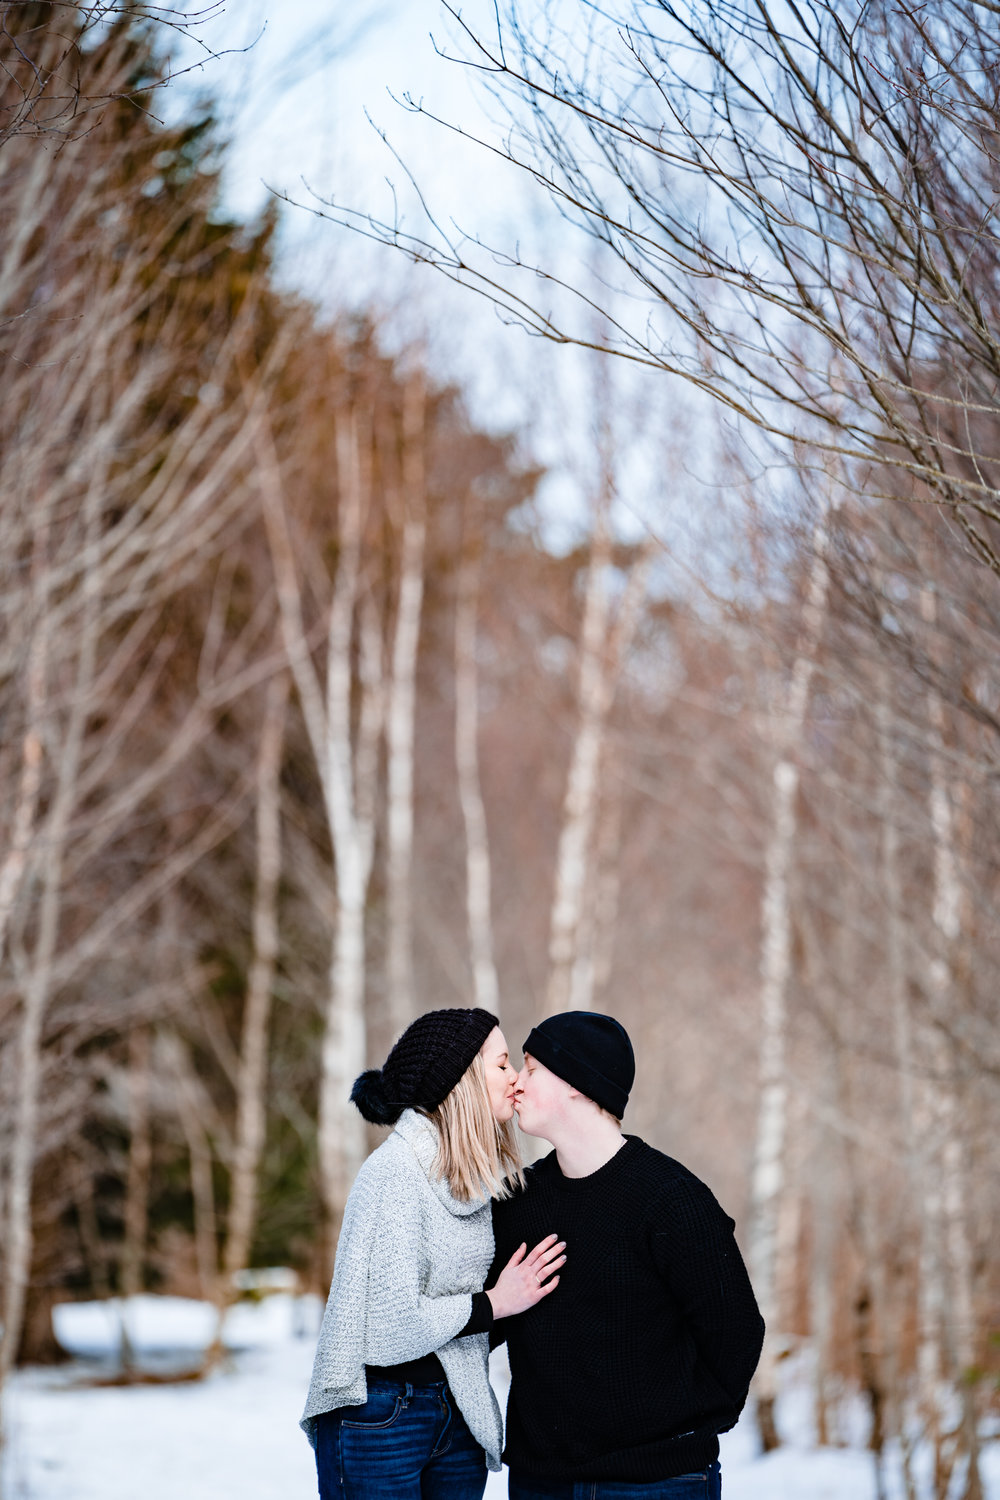 Haley&Brandon (15 of 64)halifax-novascotia-engagementphotography-wedding-foxandfellow-Ottawa-winter.jpg